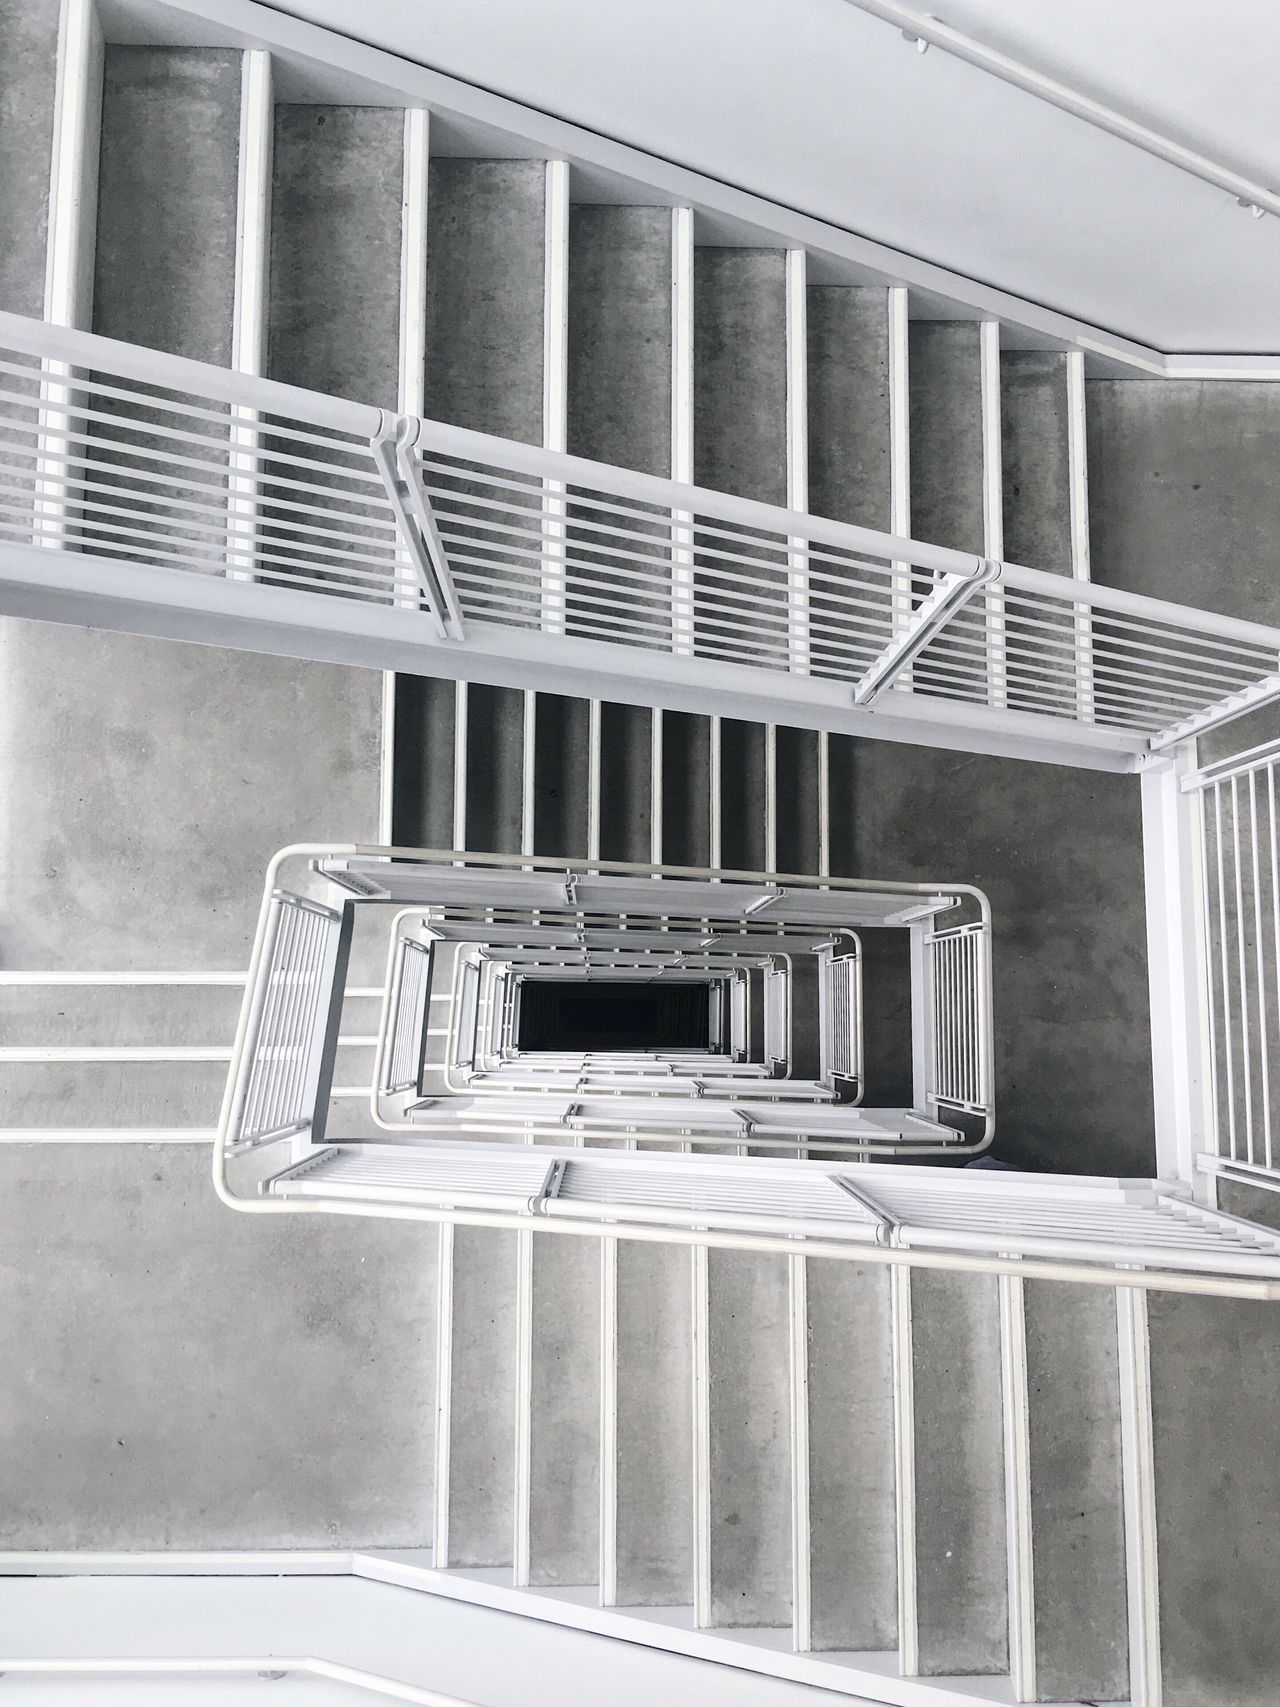 Stairs Stairs_collection Square Stairs Descending Downward Spiral Staircase Stairways